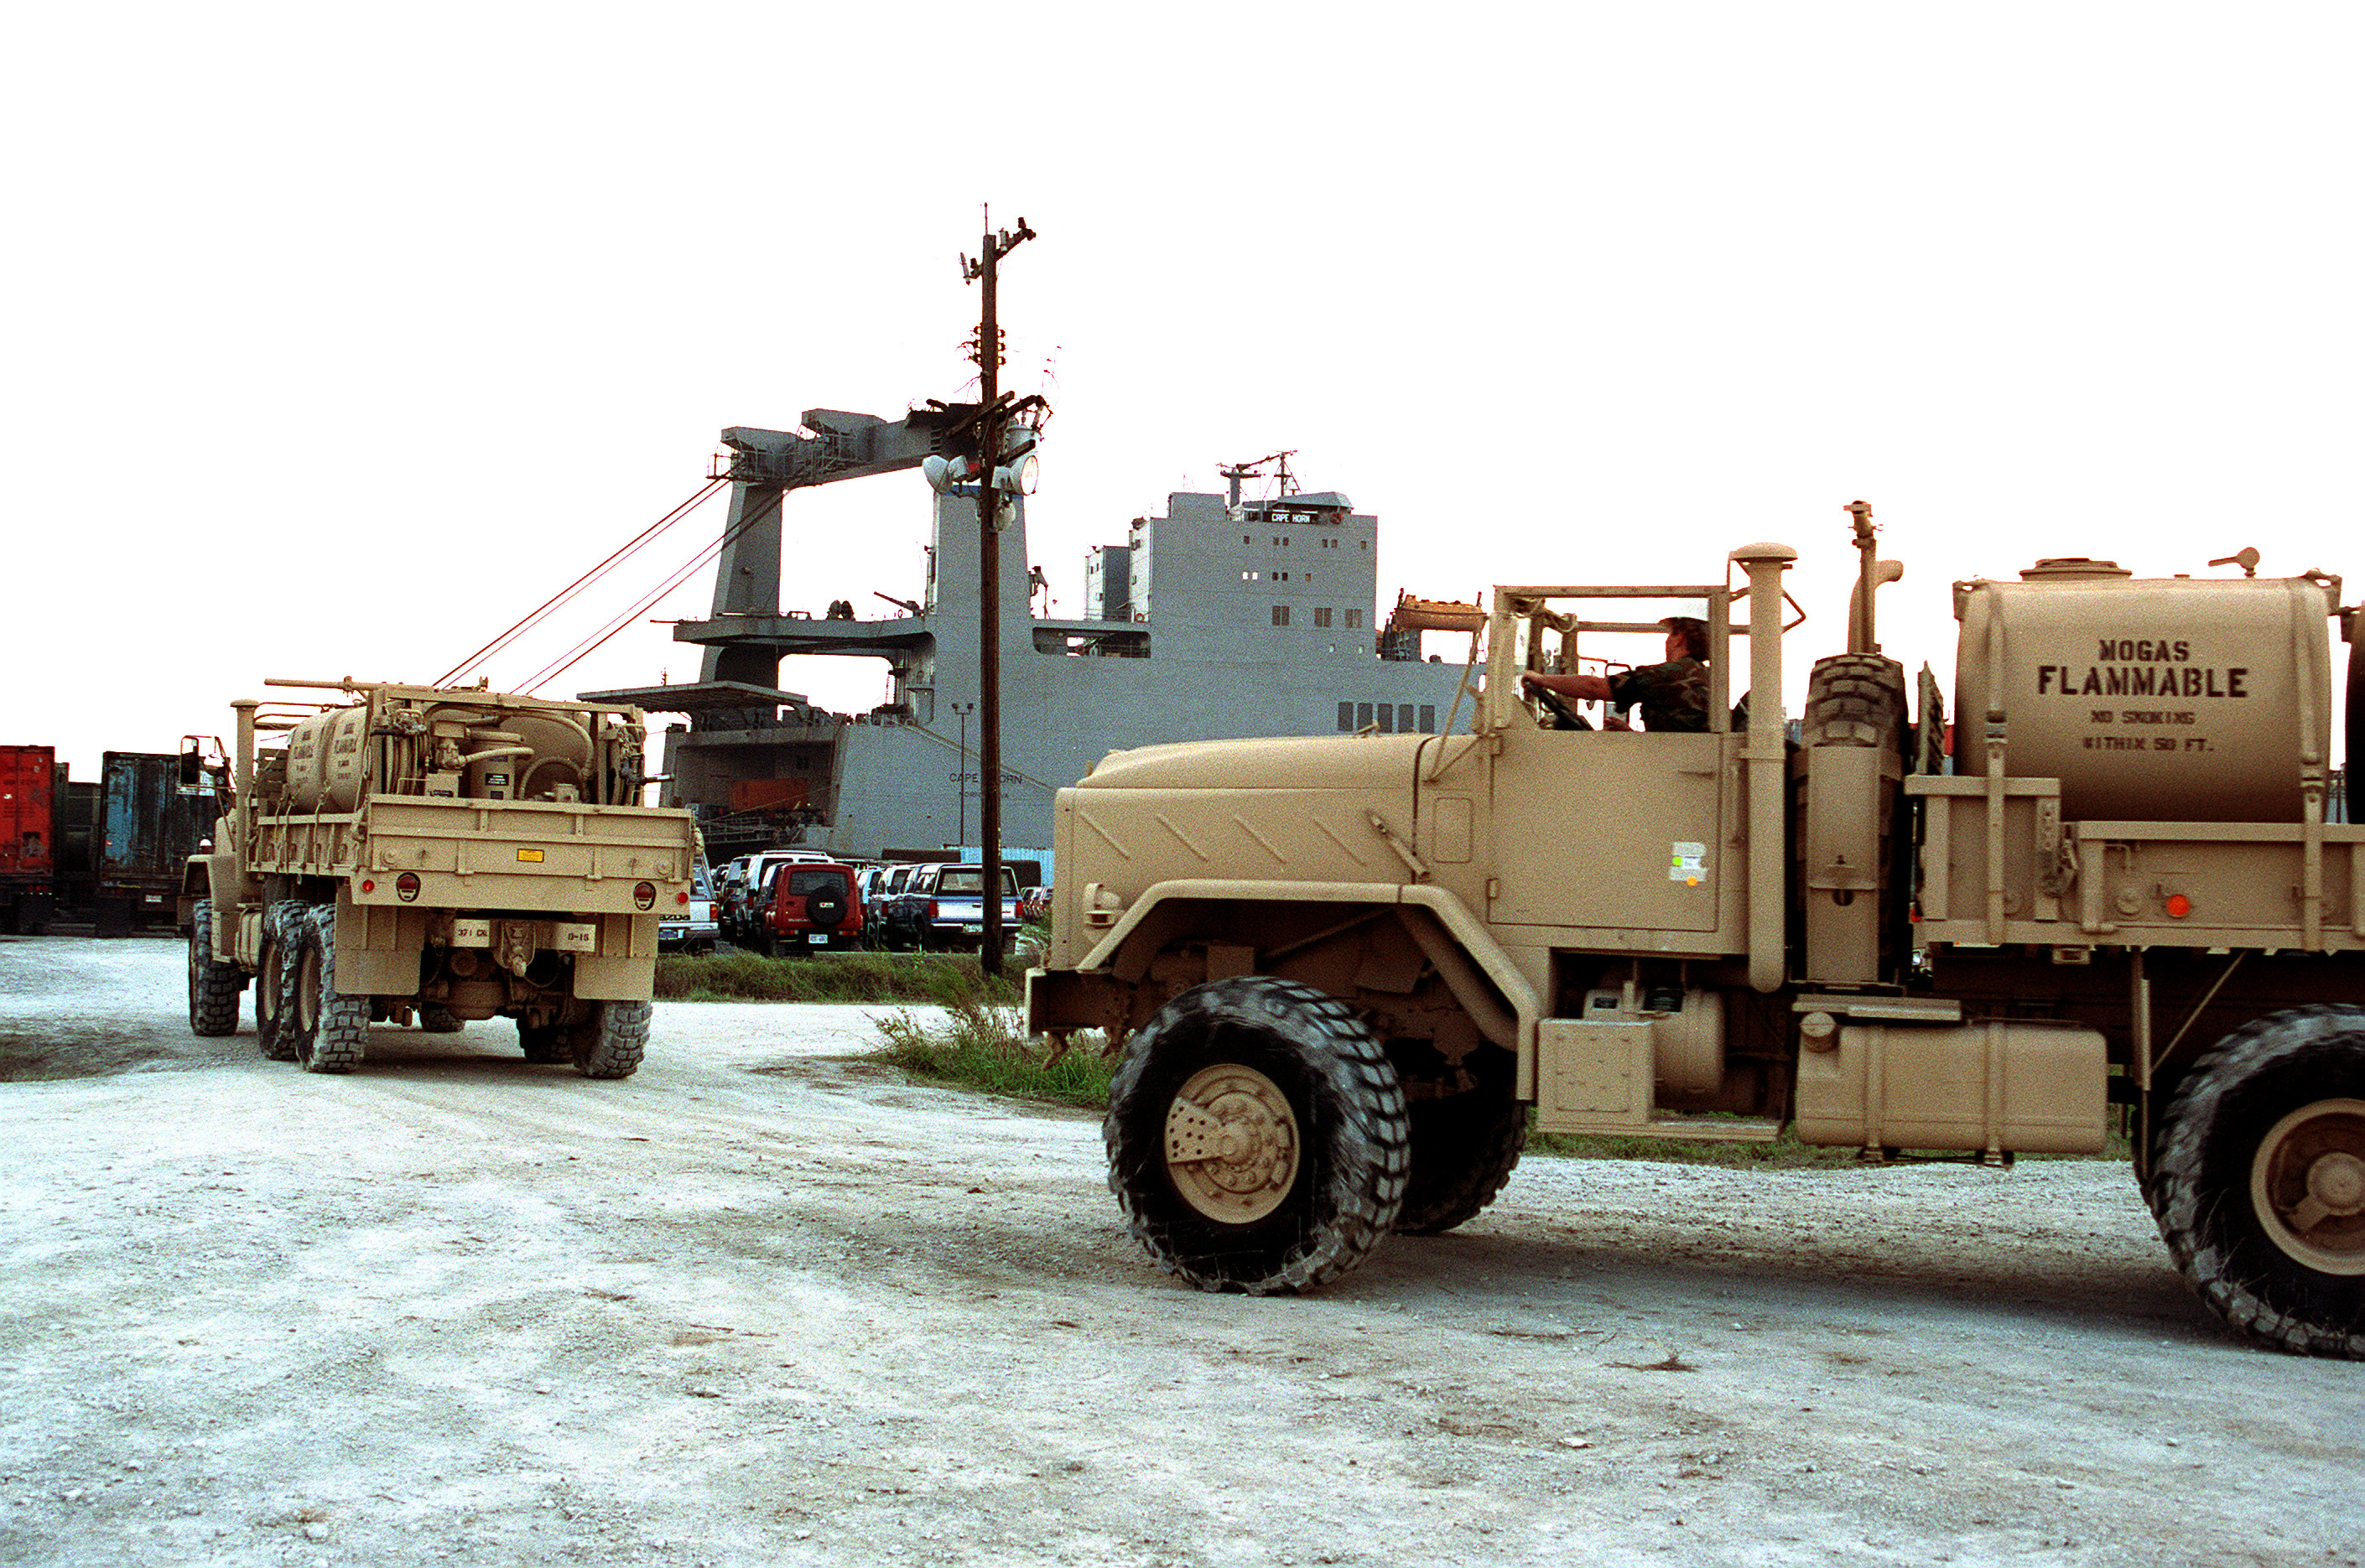 File:M939 5-ton fuel trucks, 1990.JPEG - Wikimedia Commons